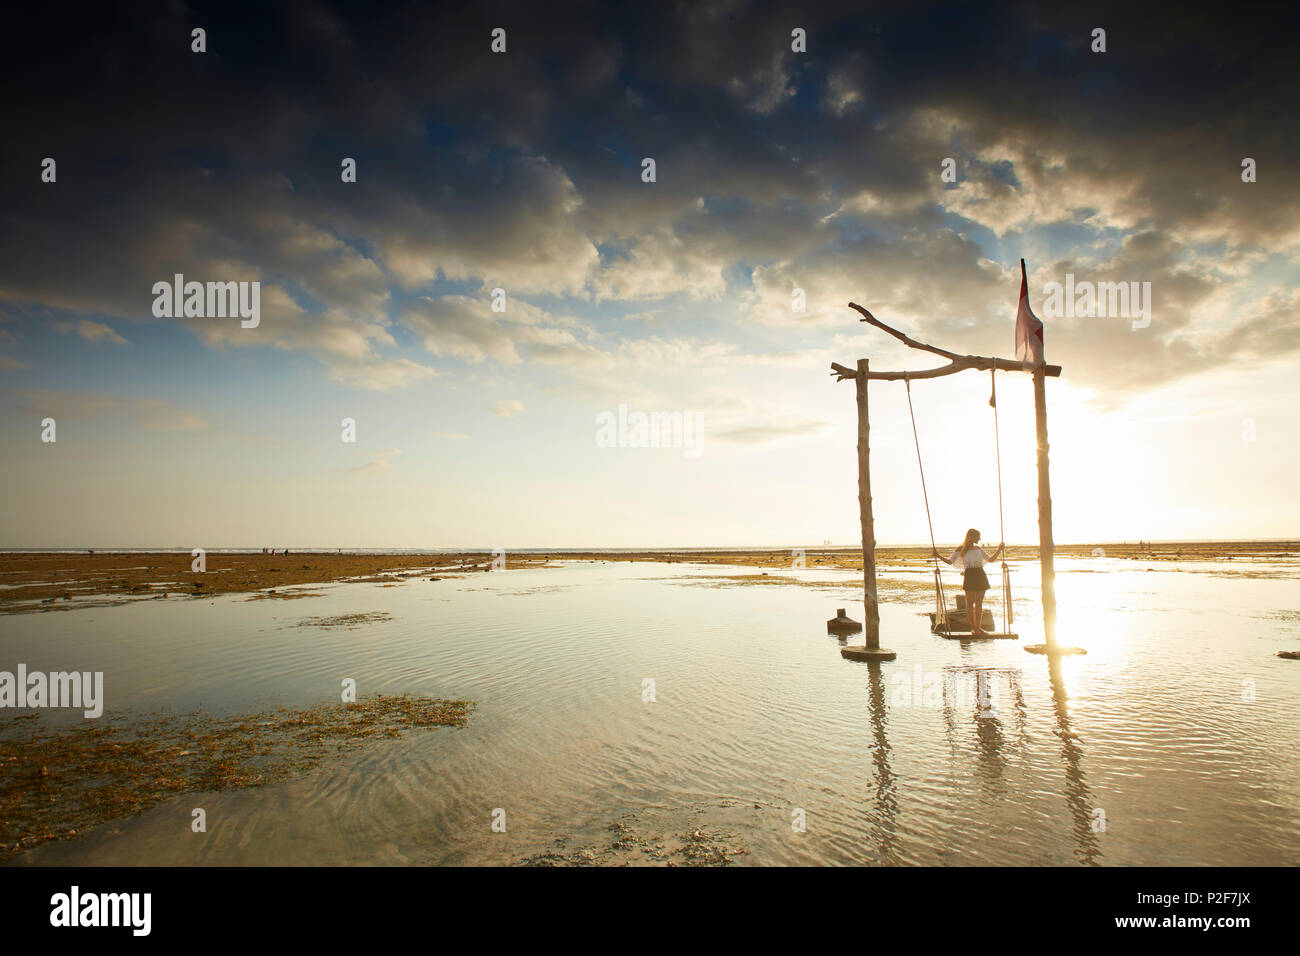 Beach swing at low tide, Gili Trawangan, Lombok, Indonesia - Stock Image